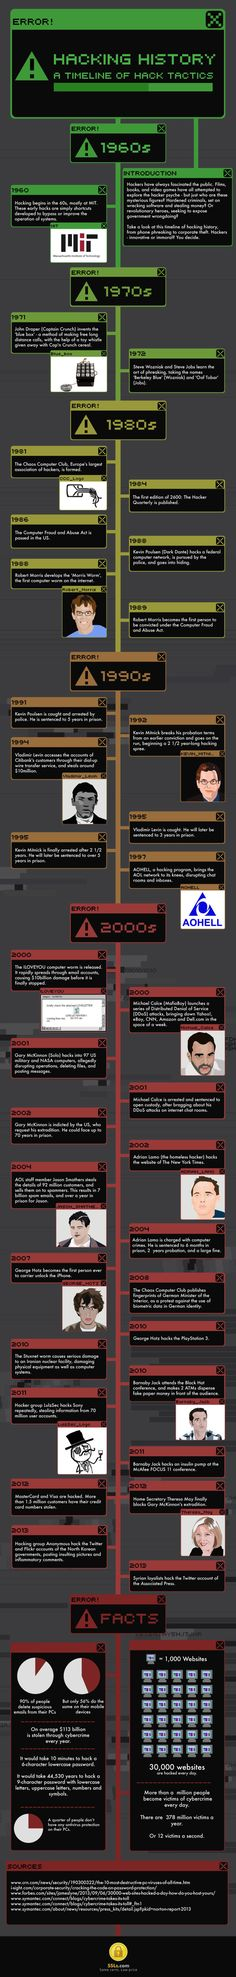 The History Of Hacking | Infographic | UltraLinx